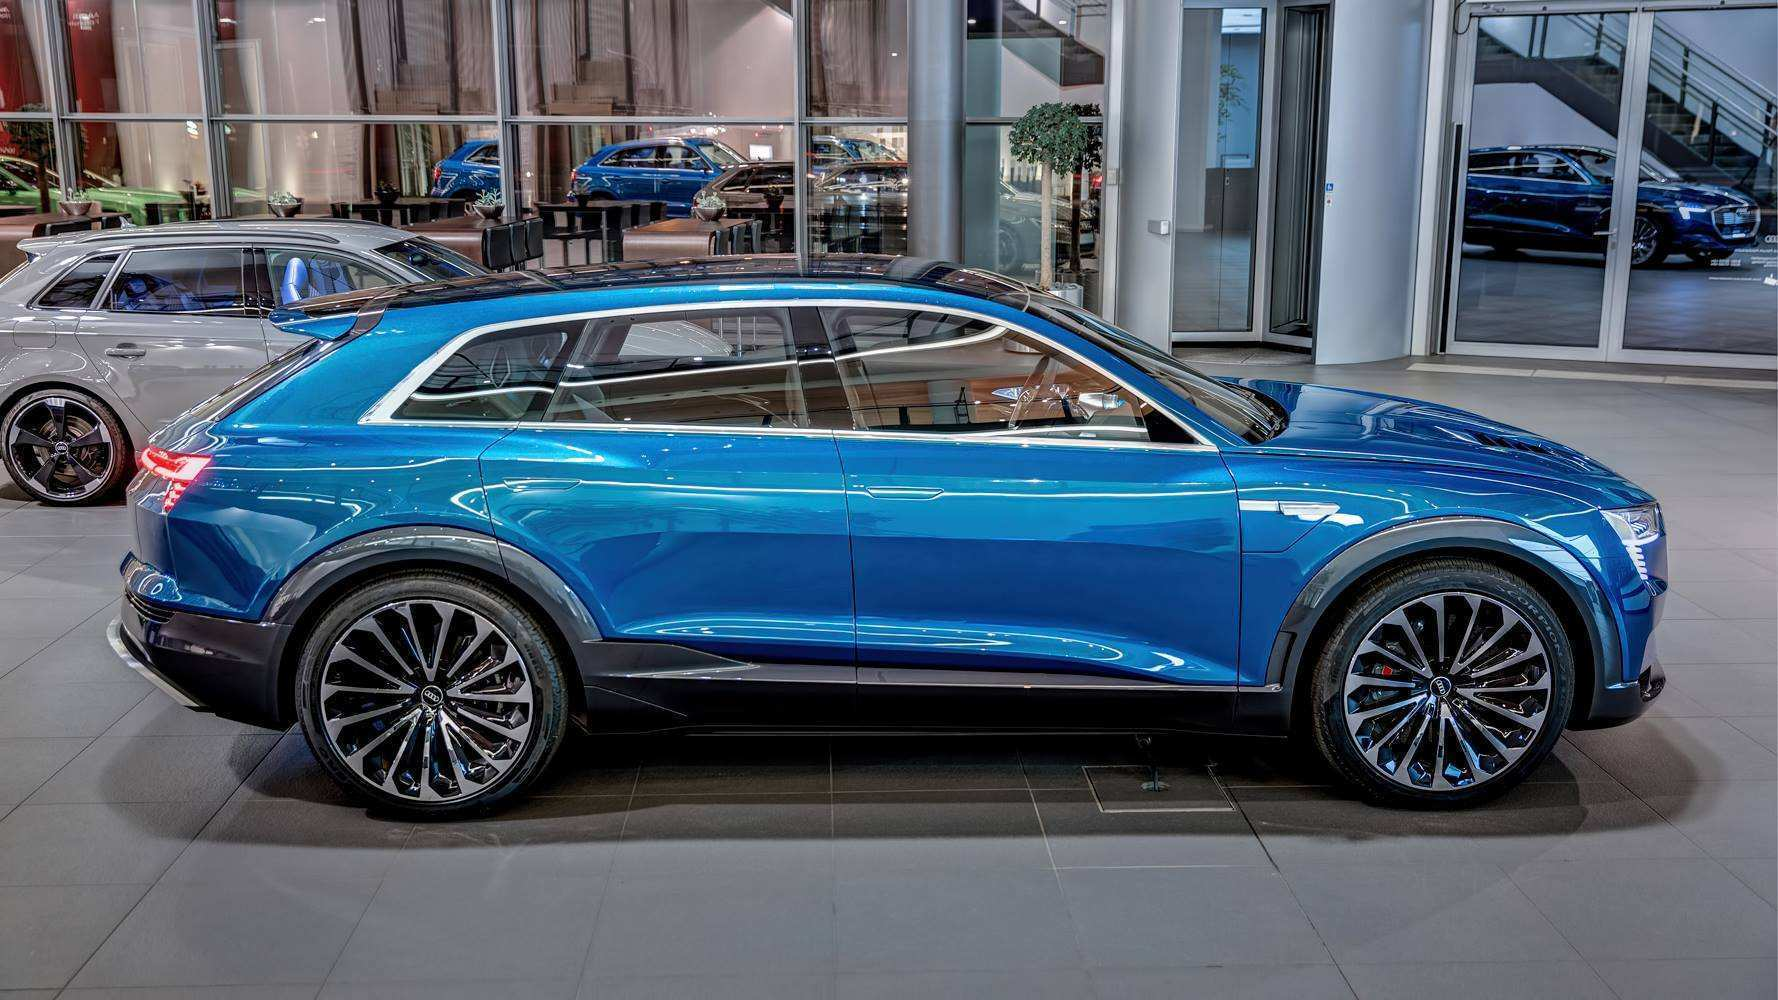 85 A Audi Electric Vehicles 2020 Price Design And Review